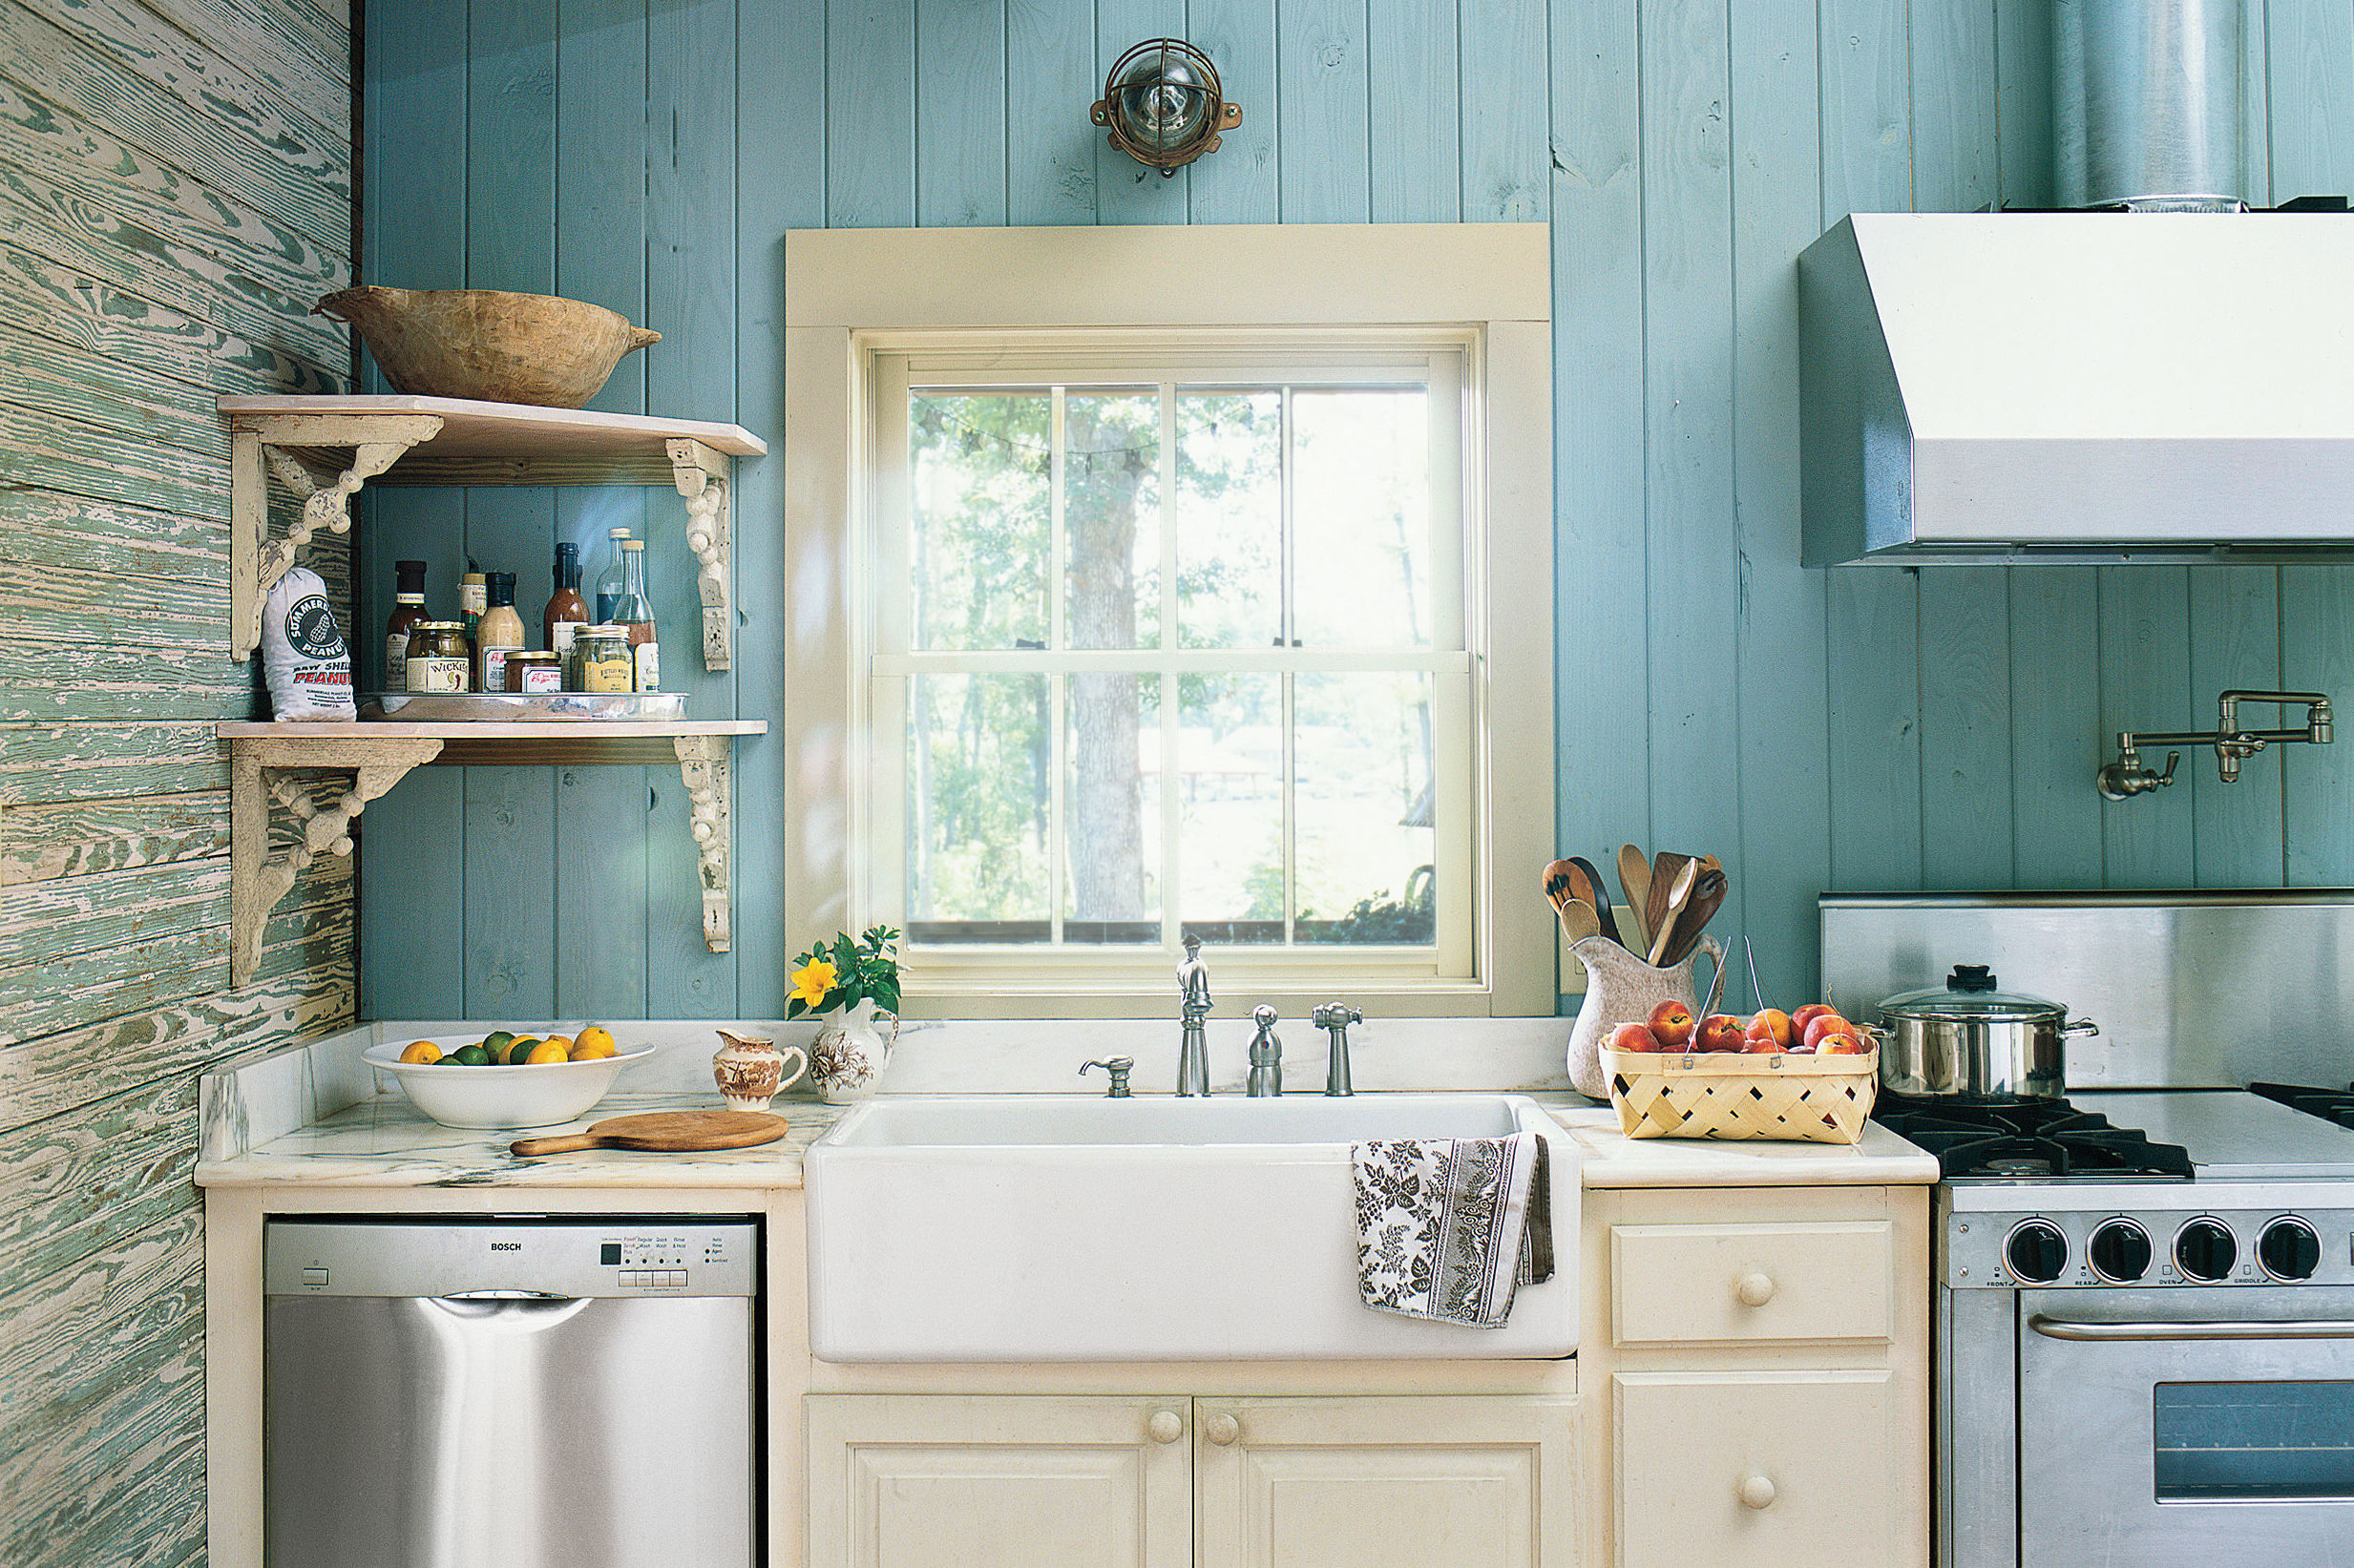 A Small Kitchen Storage Idea That Makes a Huge Difference - Southern ...